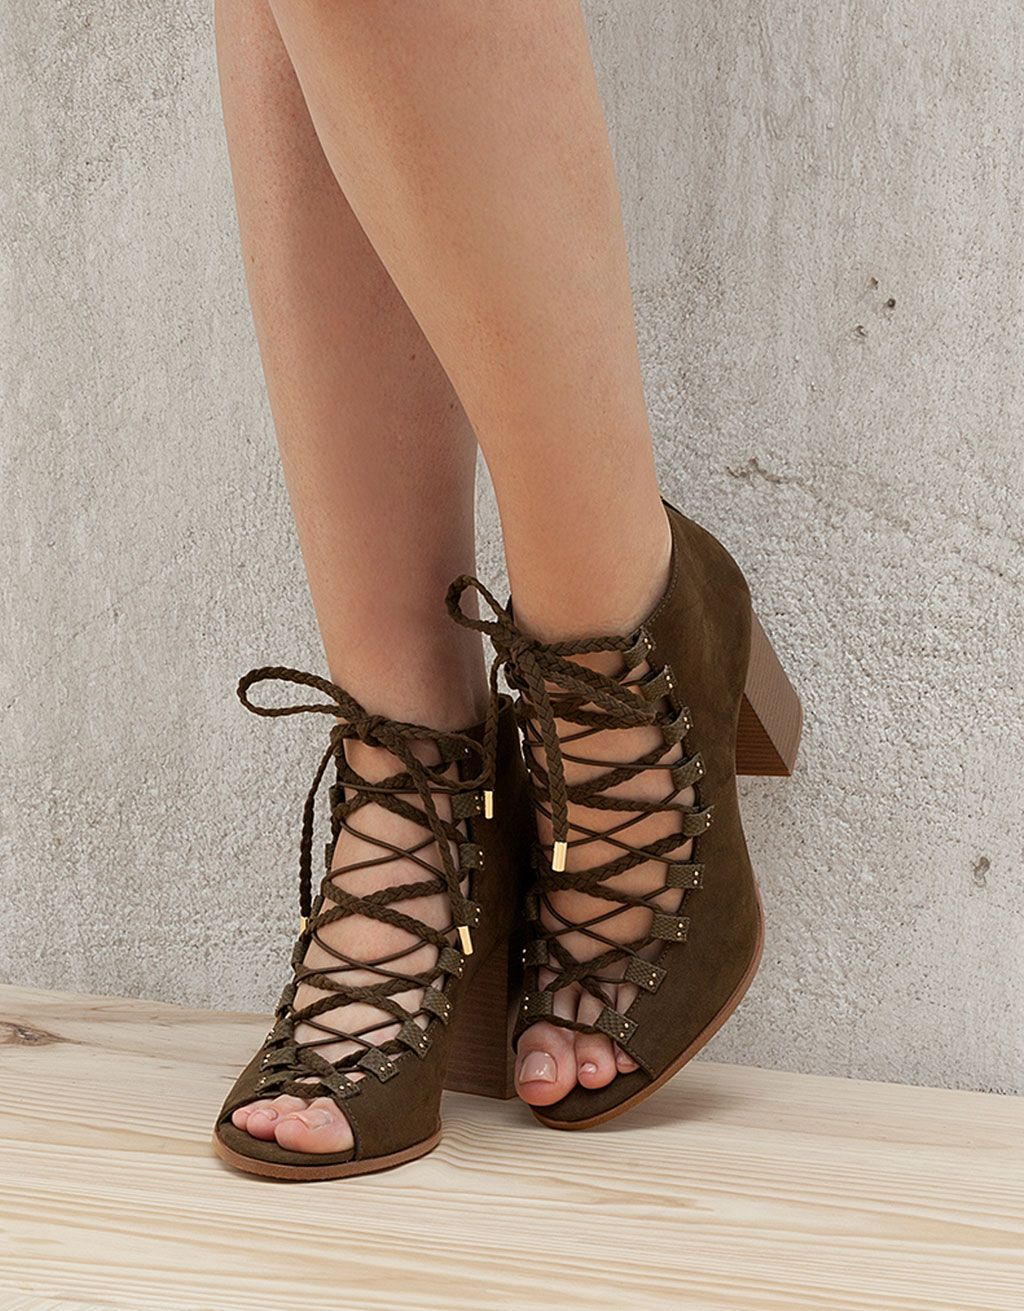 Lace-up heeled sandals. Discover this and many more items in Bershka with  new products every week 90fadd42c3dd